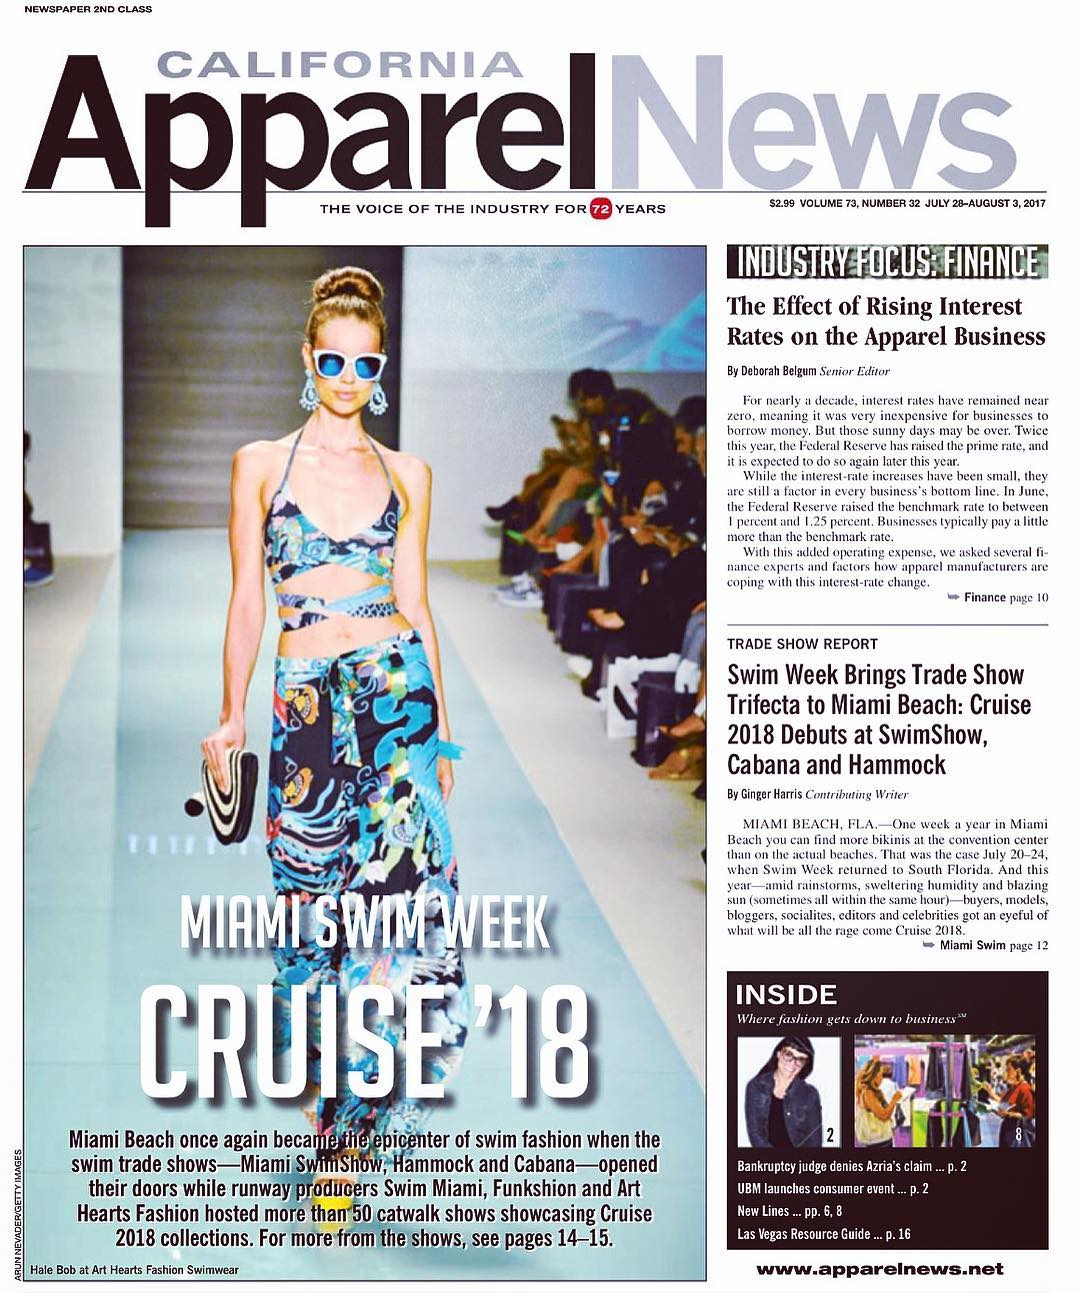 California Apparel News and Miami Swim Week